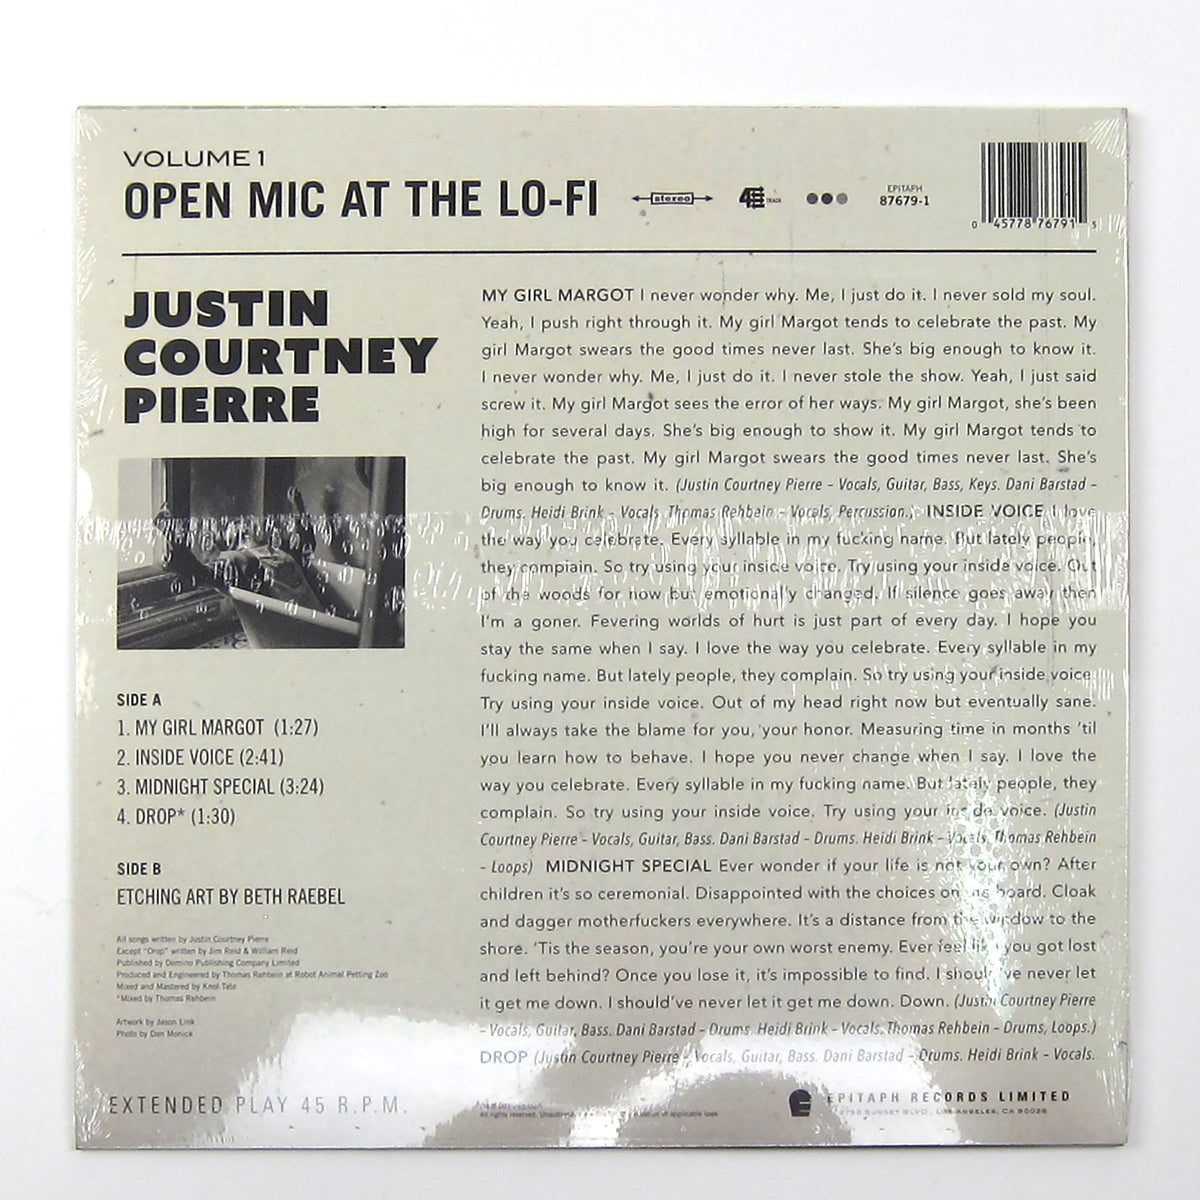 Justin Courtney Pierre: Open Mic At The Lo-Fi Vol.1 (Motion City Soundtrack) Vinyl LP (Record Store Day)